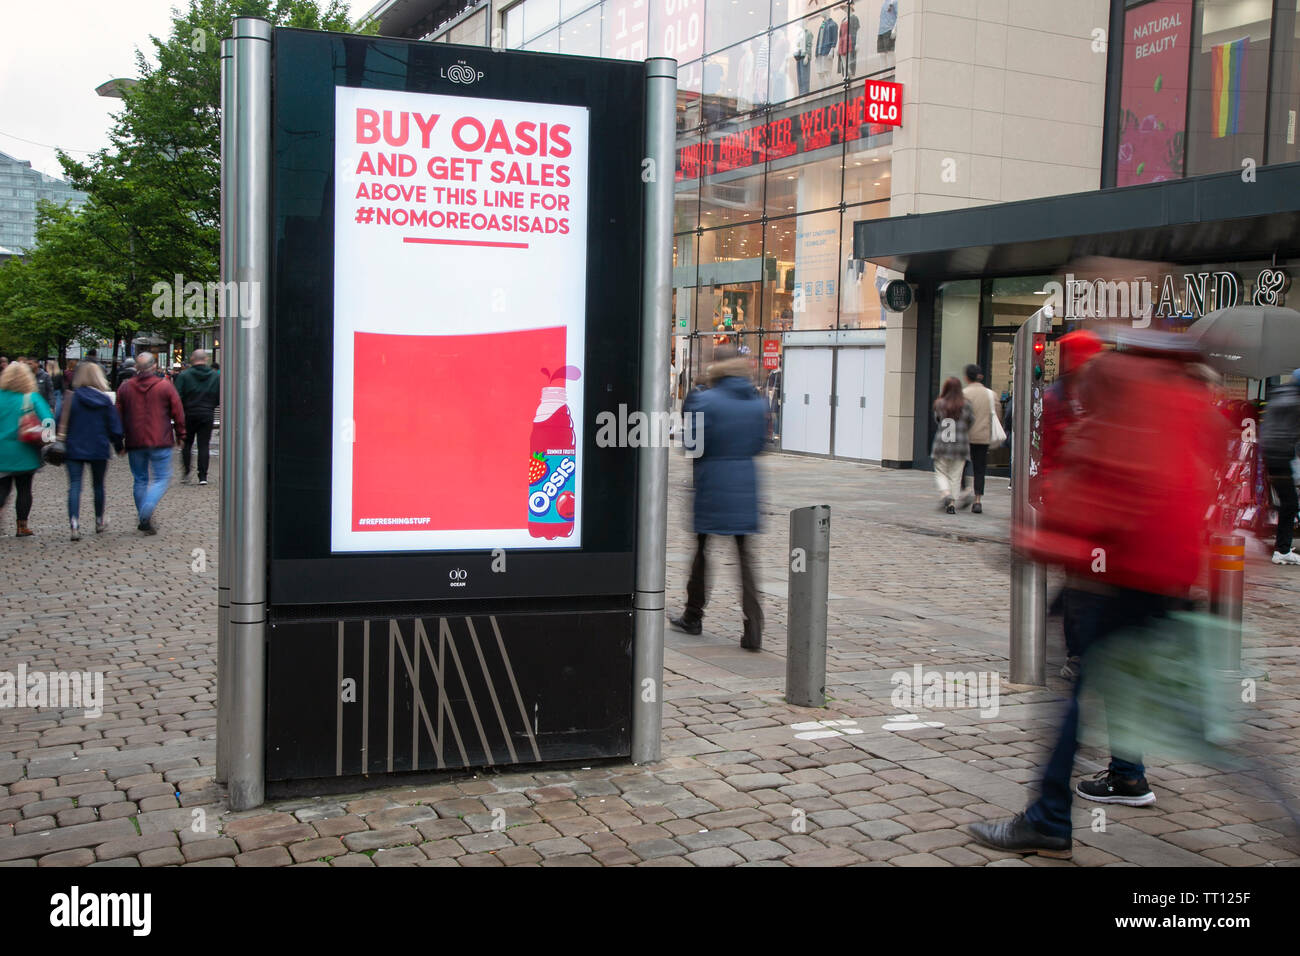 People passing Stop advertising Oasis ads, Shops, shoppers, retail business district, Manchester city centre, UK - Stock Image